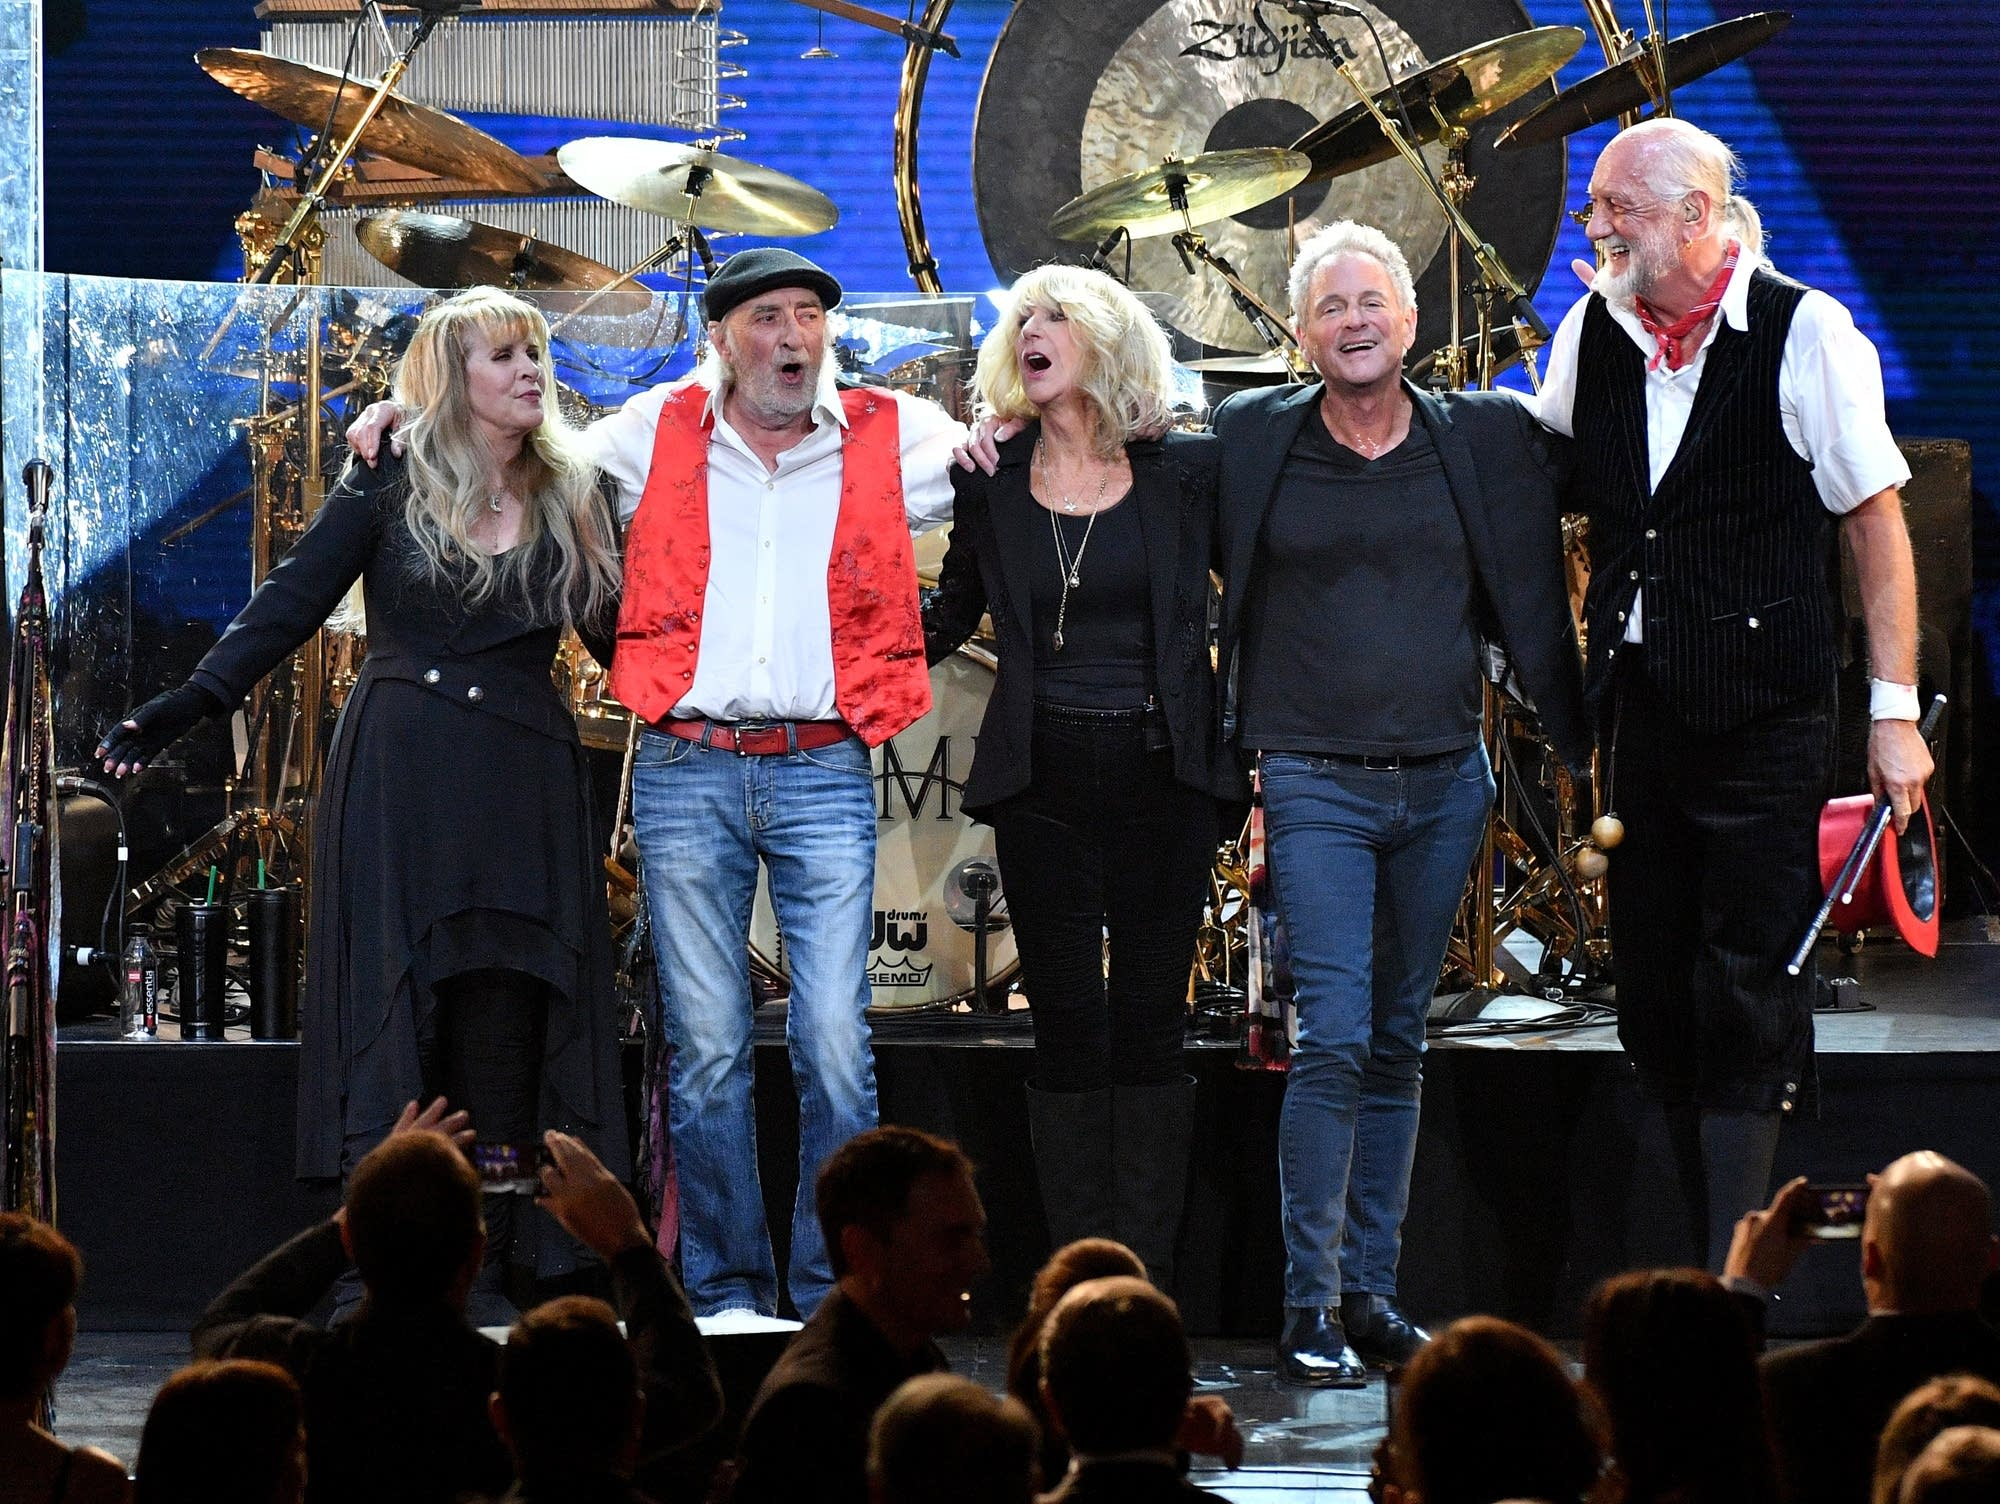 Fleetwood Mac at the MusiCares Person of the Year ceremony in 2018.